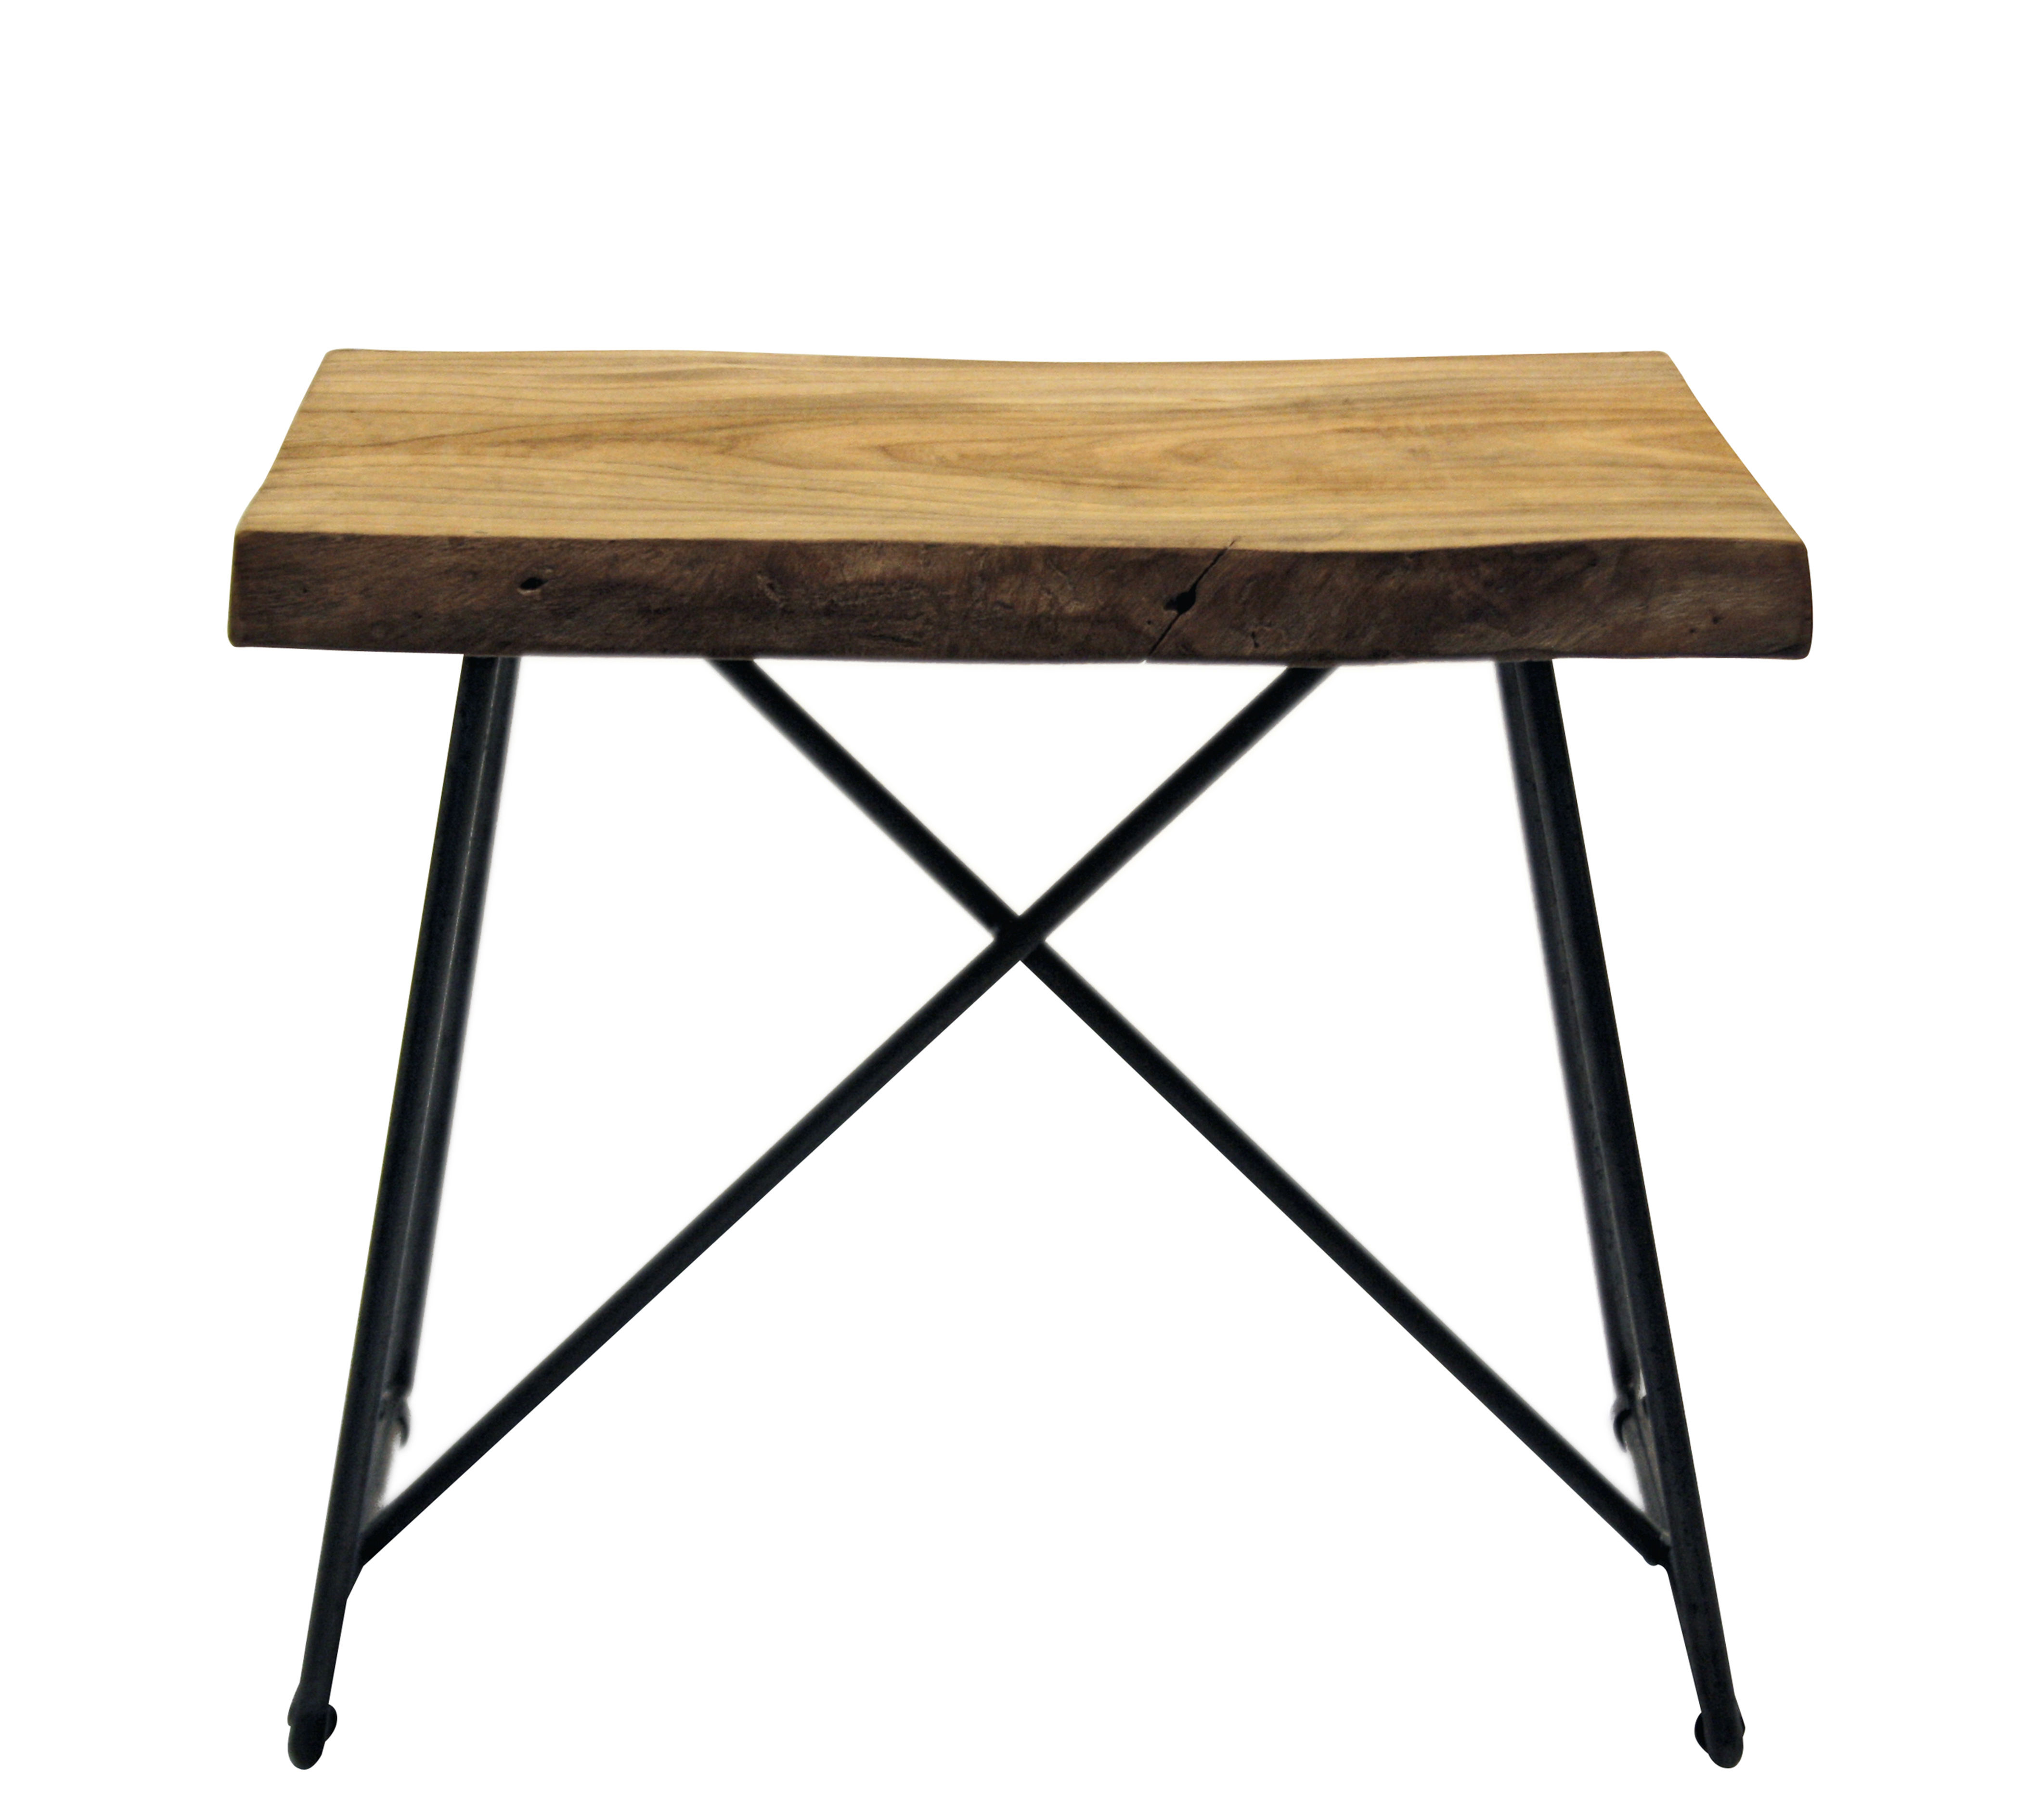 Furniture - Stools - Old Times Stool - / H 47 cm - Wood & metal by Zeus - Natural wood / Black base - Painted steel, Solid olive tree